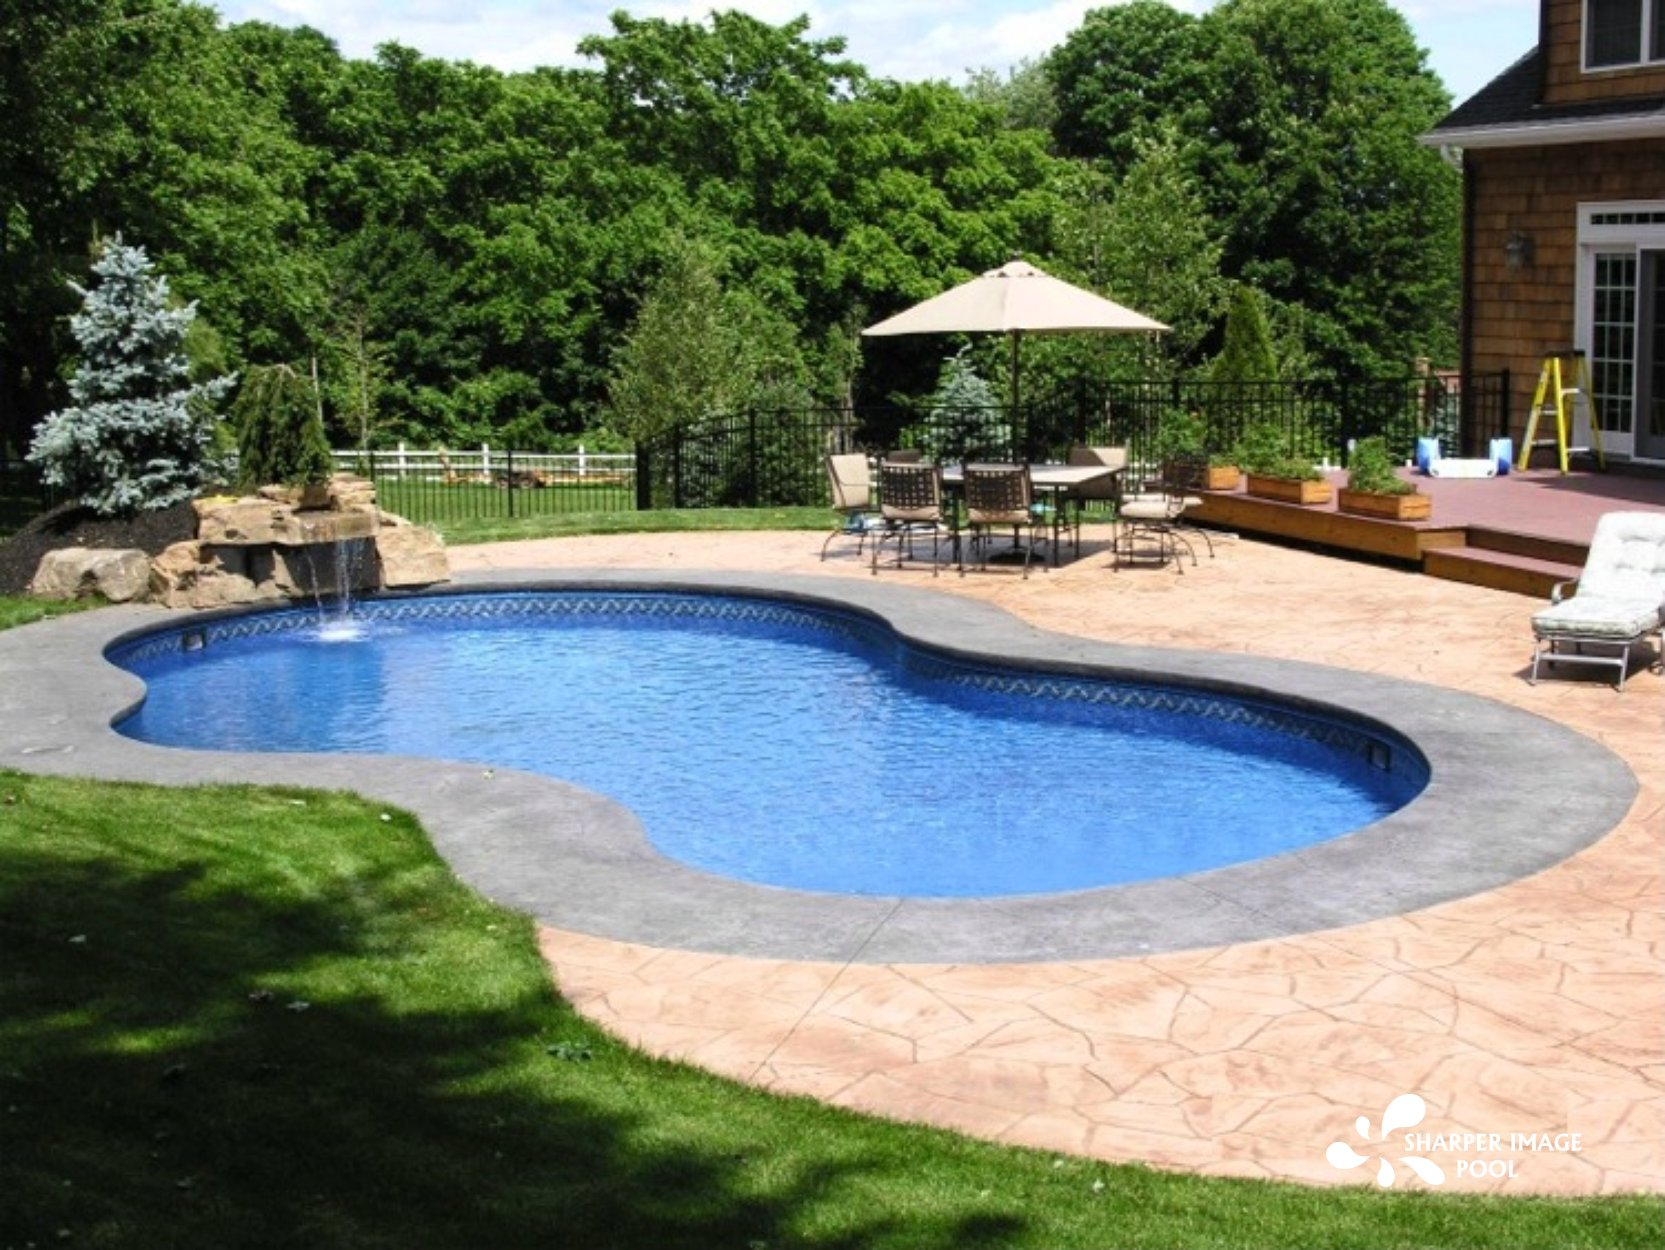 Vinyl Liner Pool Designs vinyl liner pools from kazdin pool spa are not your typical cookie cutter Vinyl Liner Pool 002 By Sharper Image Pool